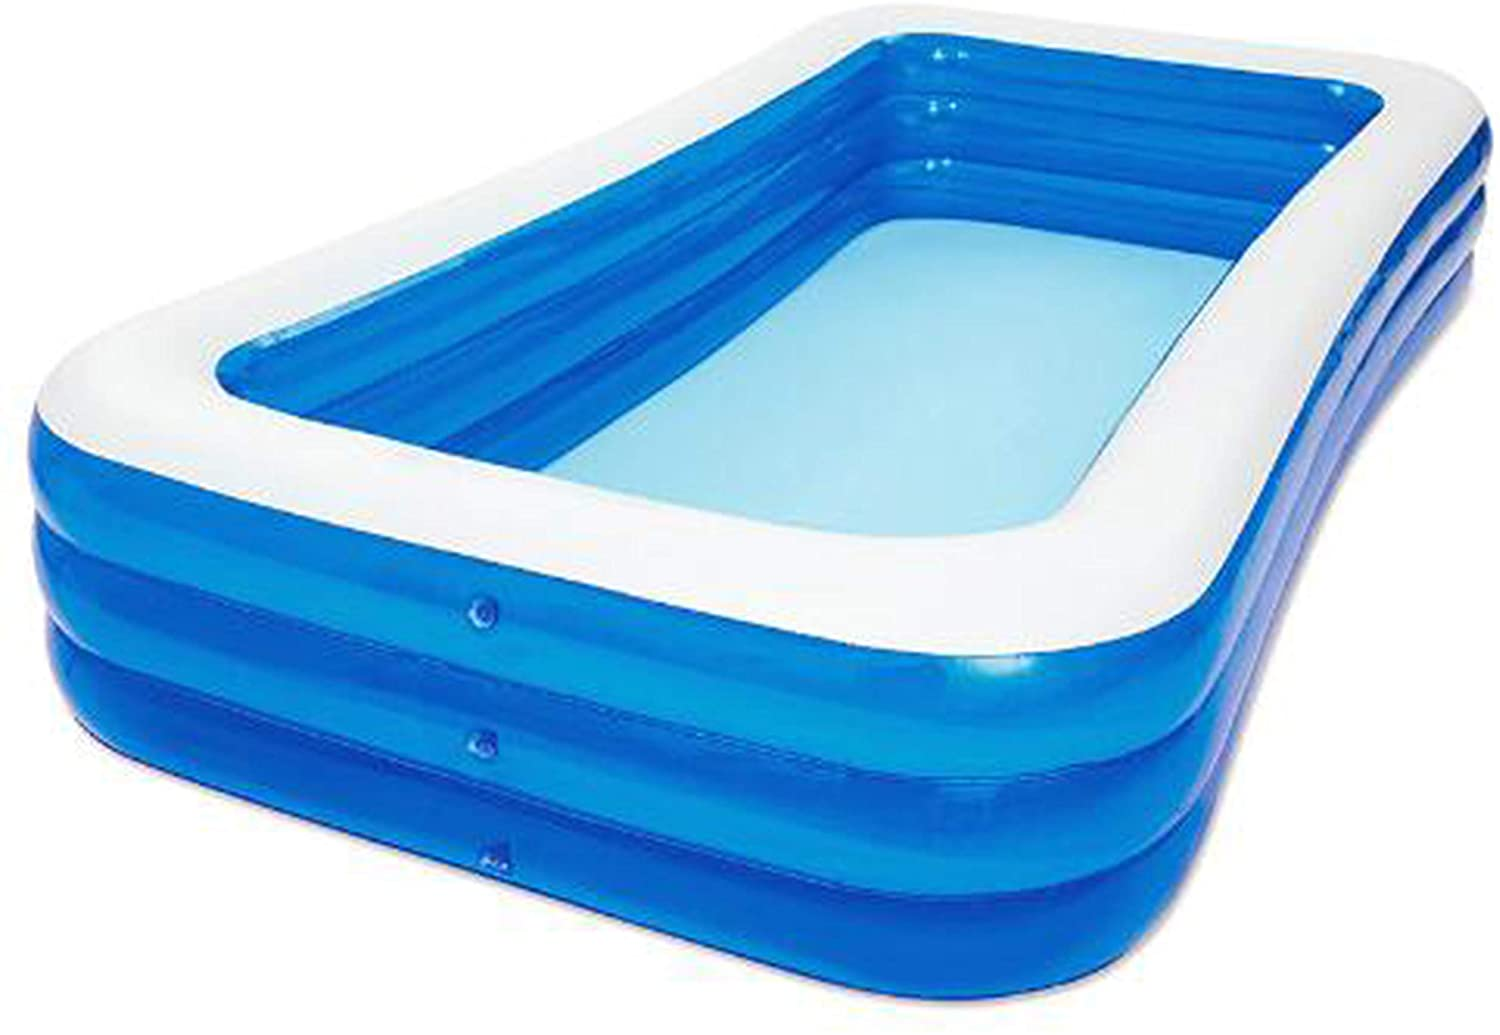 VIAI Inflatable Pool,Swimming Pools,Inflatable Pool for Adults,Above Ground Pool